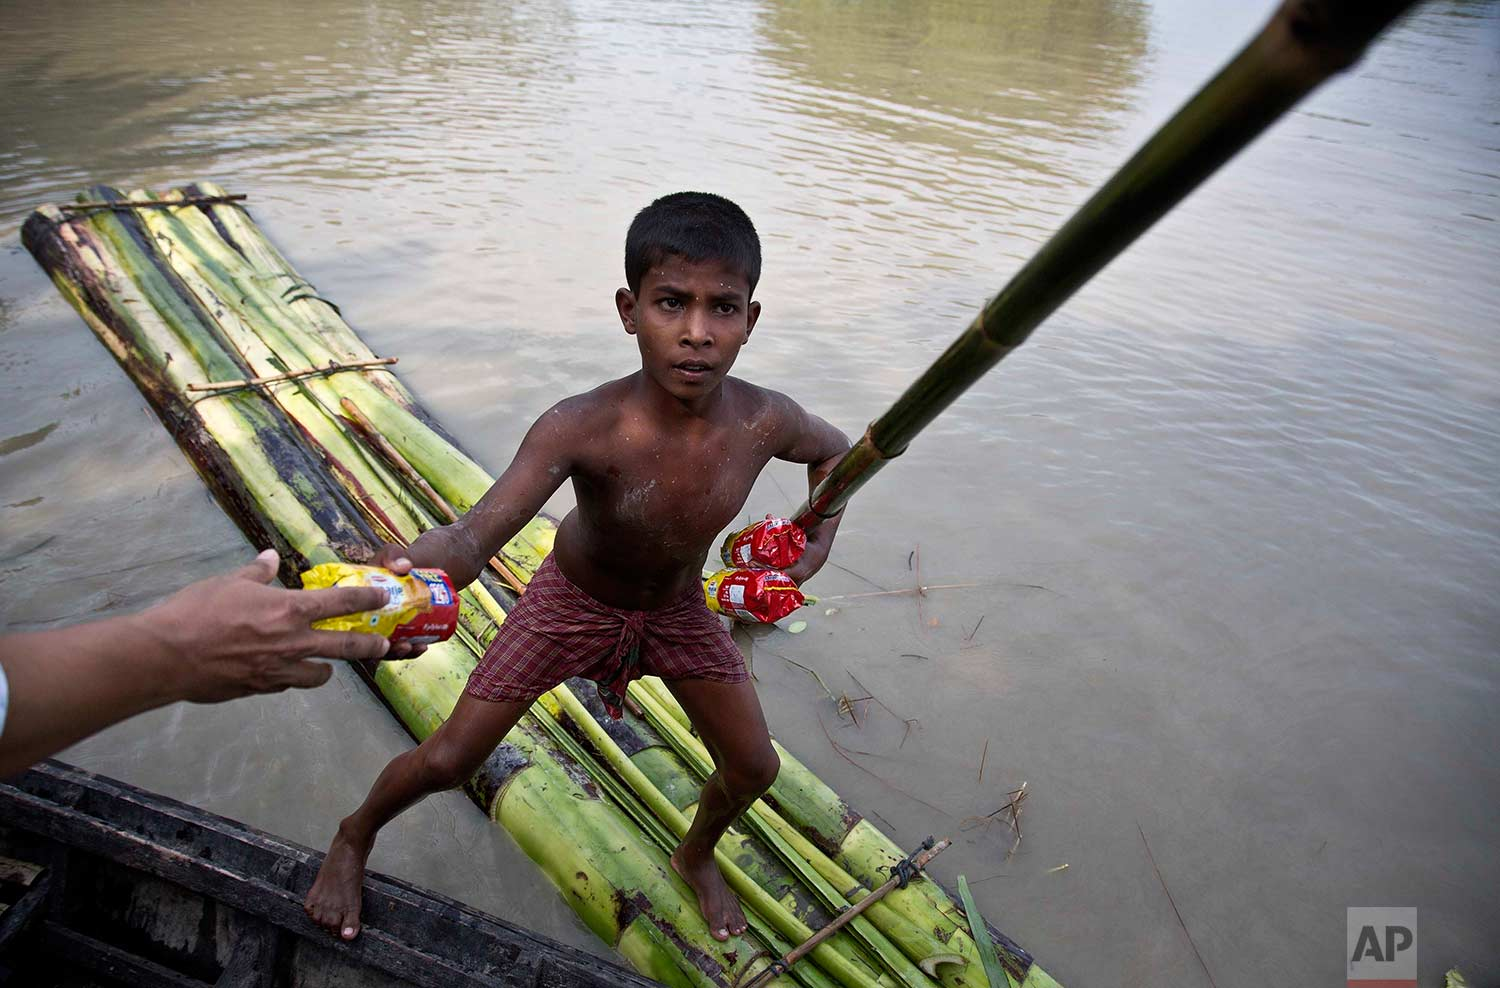 A flood affected boy on a makeshift banana raft collects biscuit packets distributed by a government official from a boat in Pokoria village, east of Gauhati, north eastern Assam state, India, Monday, Aug. 14, 2017. (AP Photo/Anupam Nath)